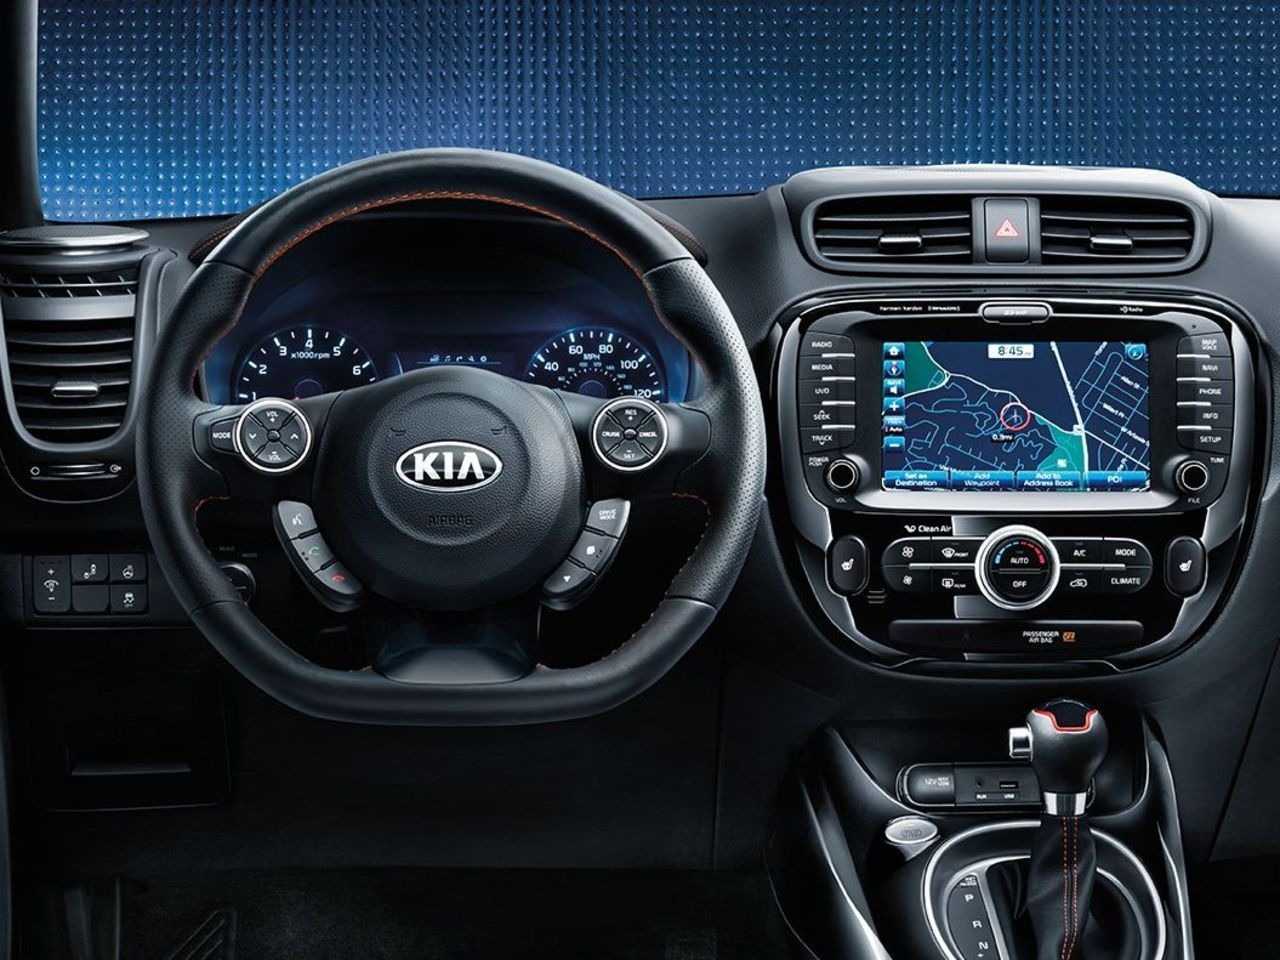 The Interior of the Kia Soul